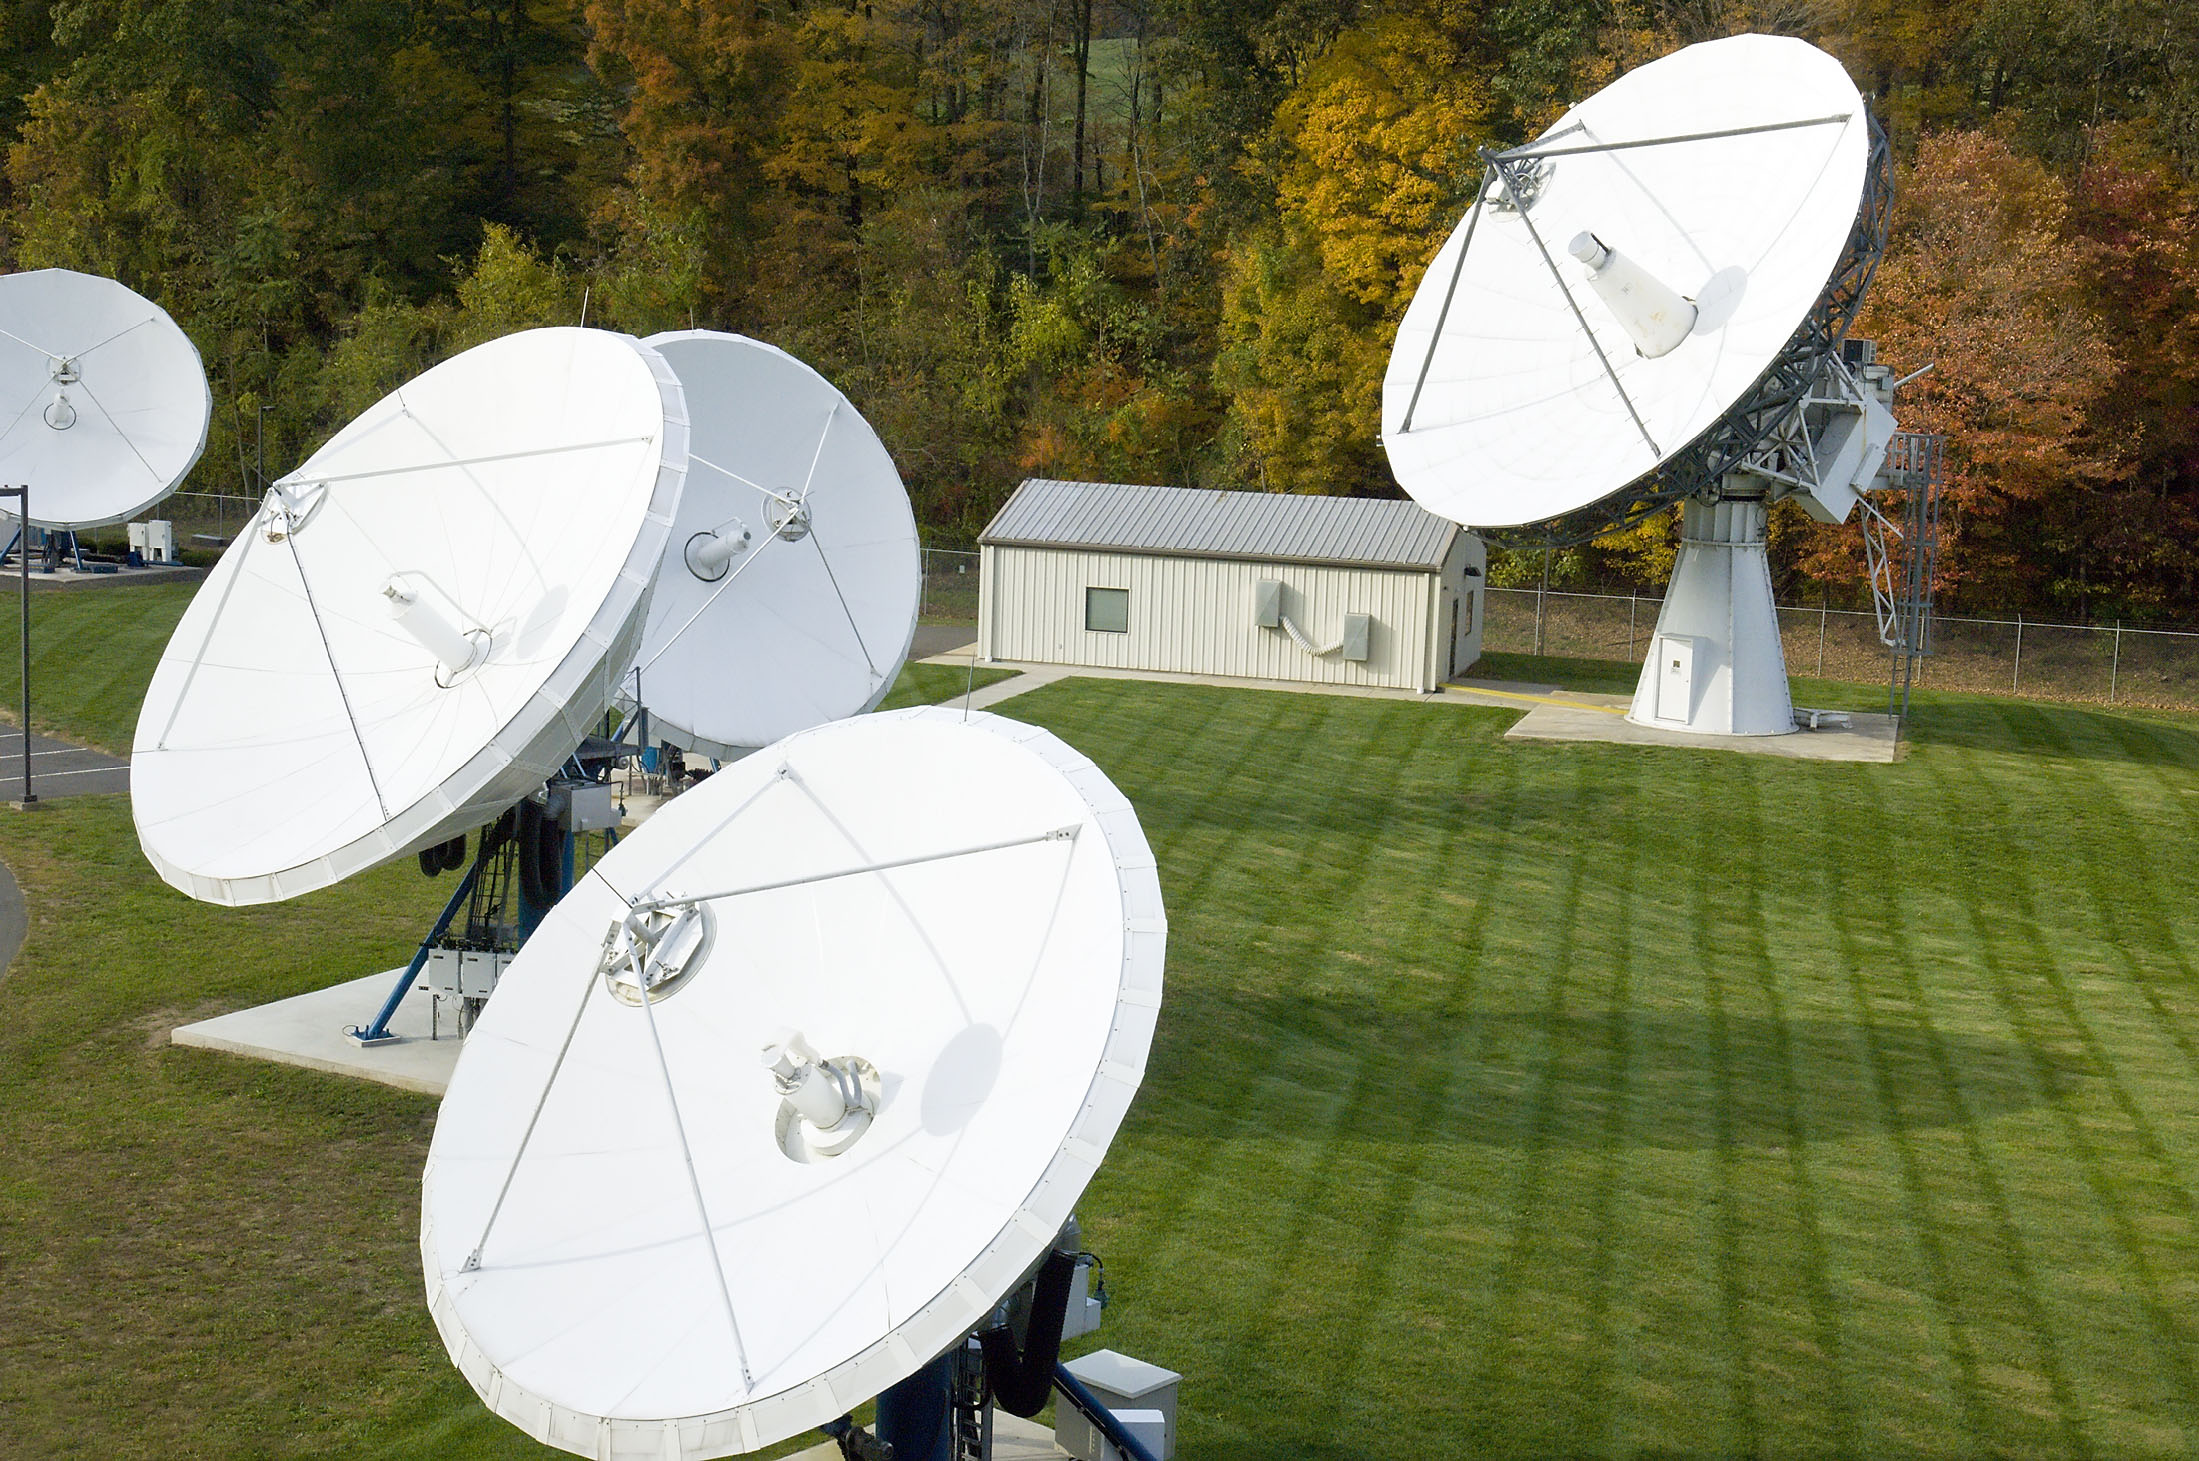 COMSAT inks deal with ABS to enhance C- and Ku-band U.S. connectivity solutions on ABS-3A